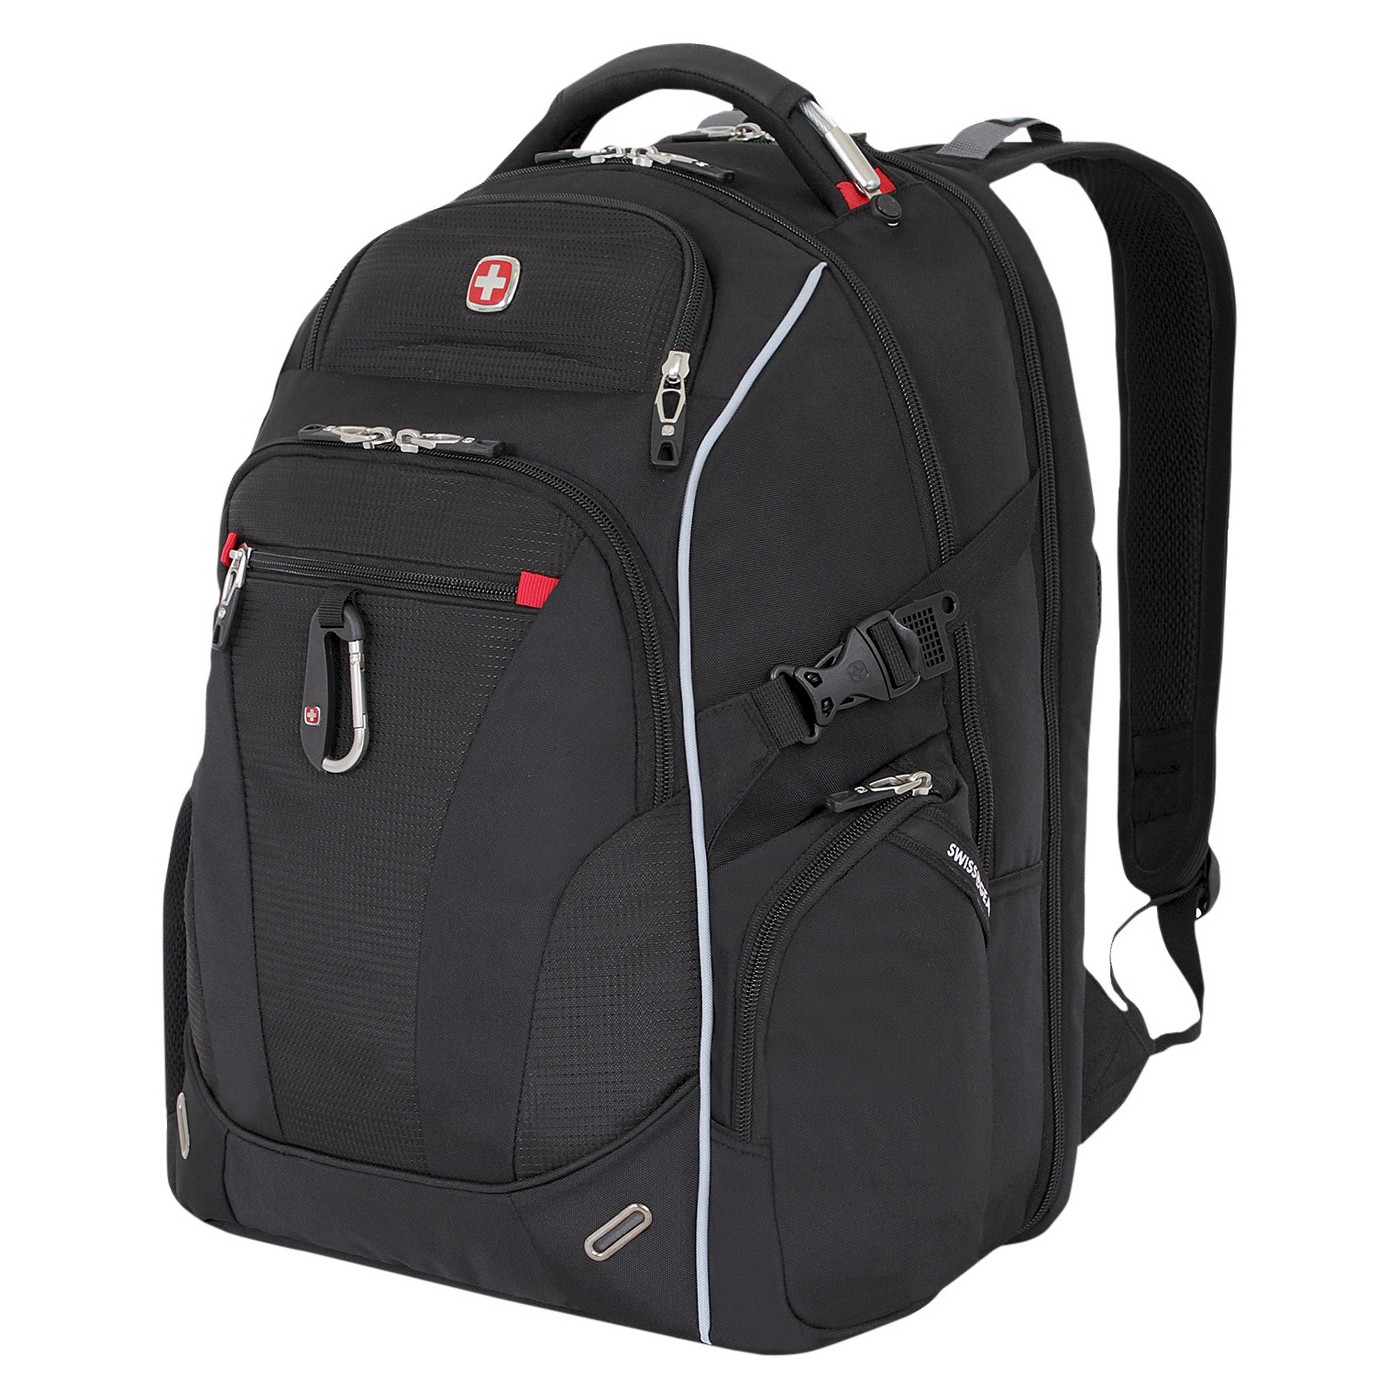 "SwissGear 18"" Scan Smart TSA Laptop Backpack"